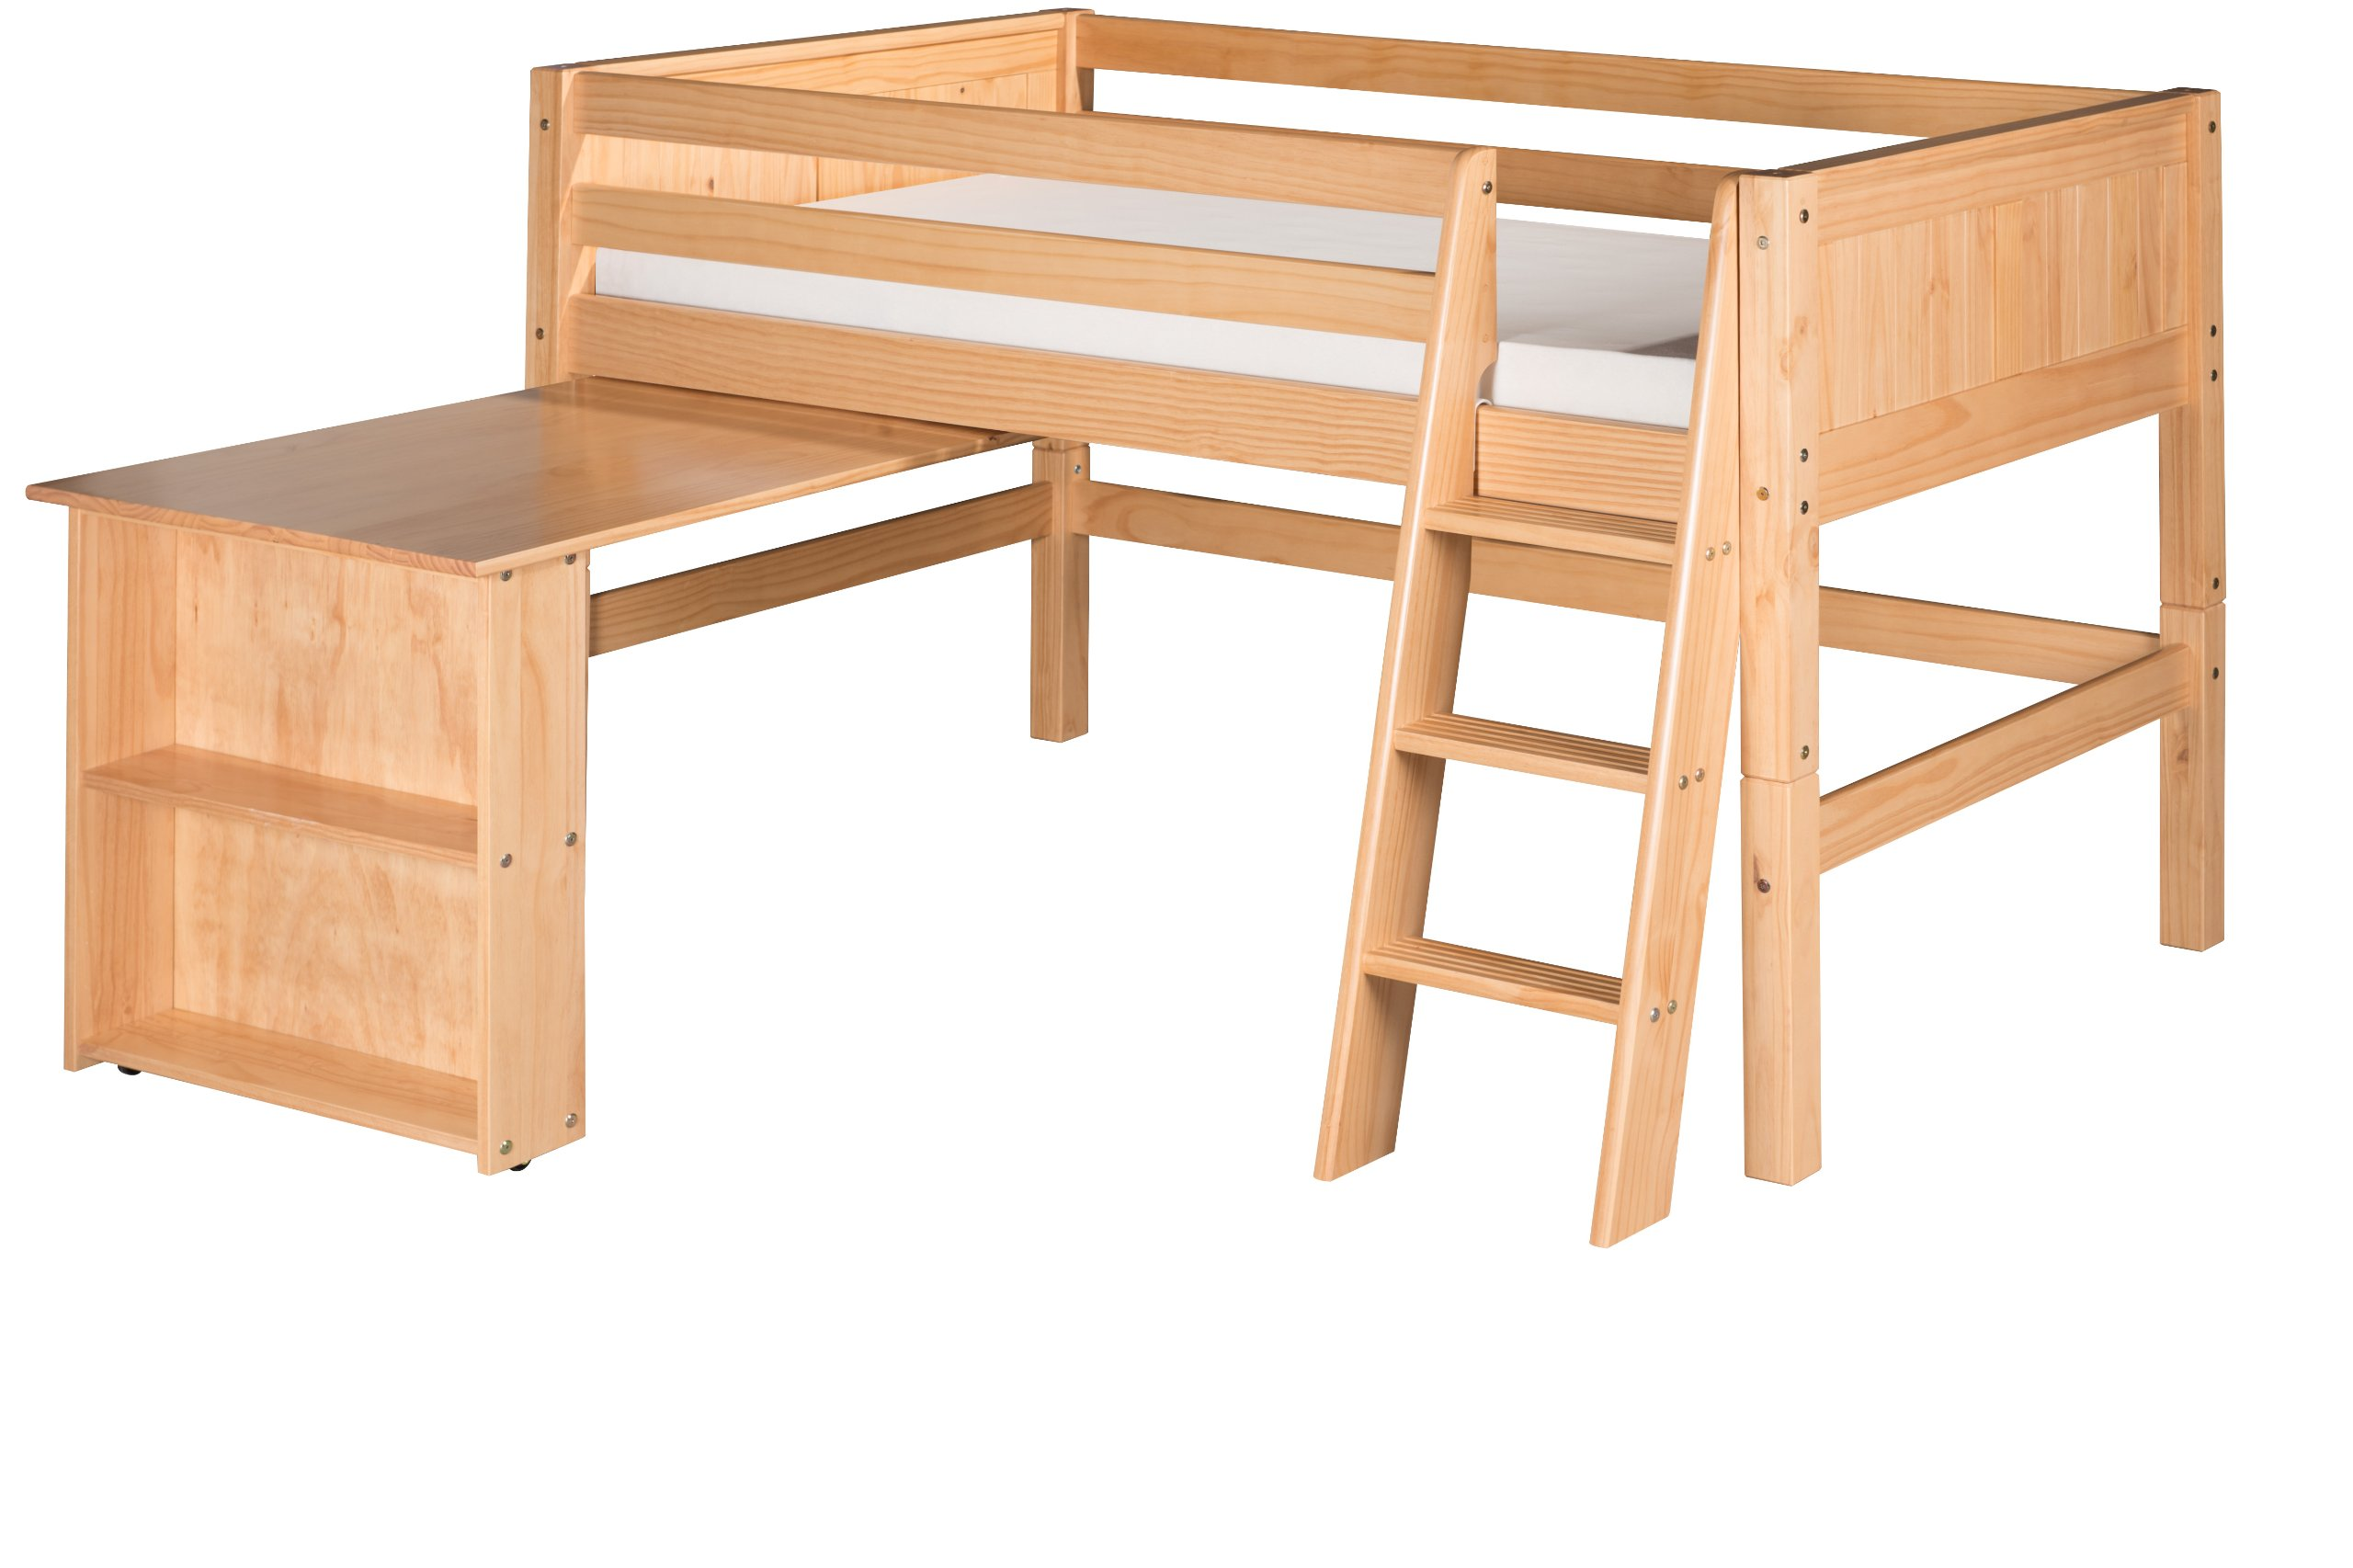 Camaflexi Panel Style Solid Wood Low Loft Bed with Retractable Desk, Twin, Side Angled Ladder, Natural